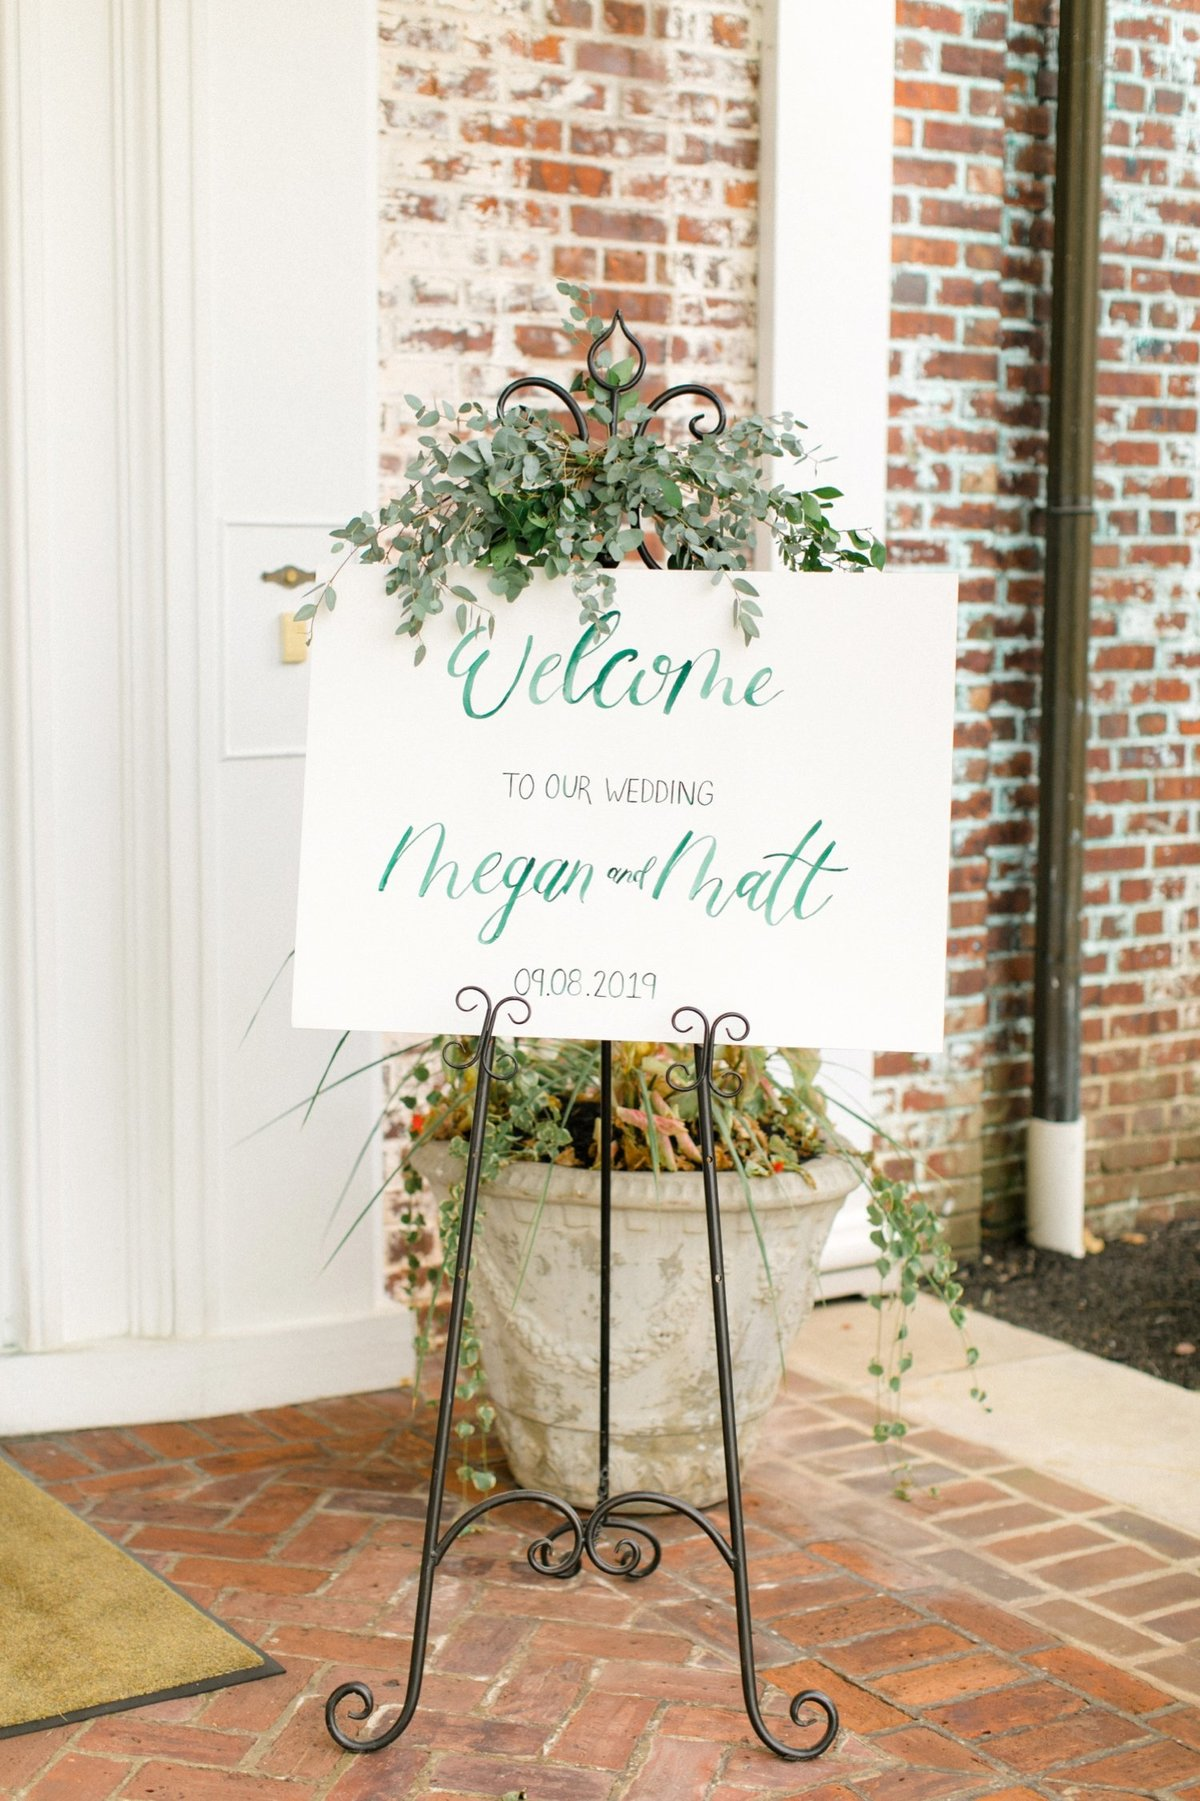 virginia_english garden wedding__2443